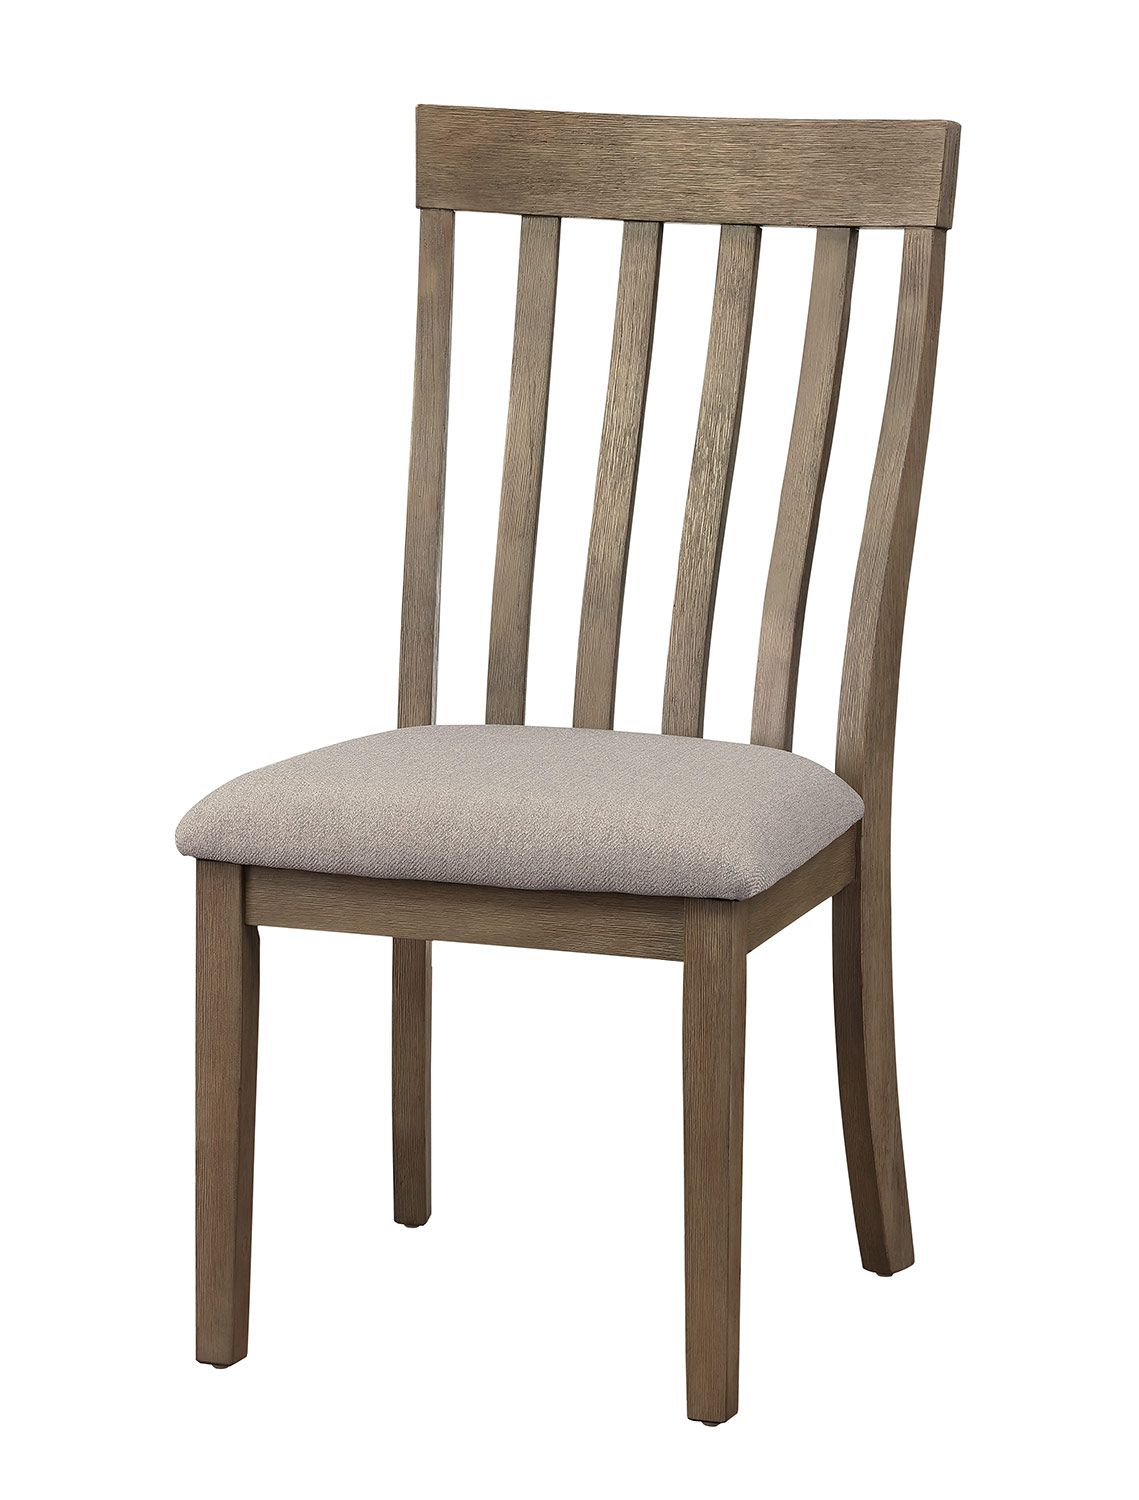 Homelegance Armhurst Side Chair - Brown